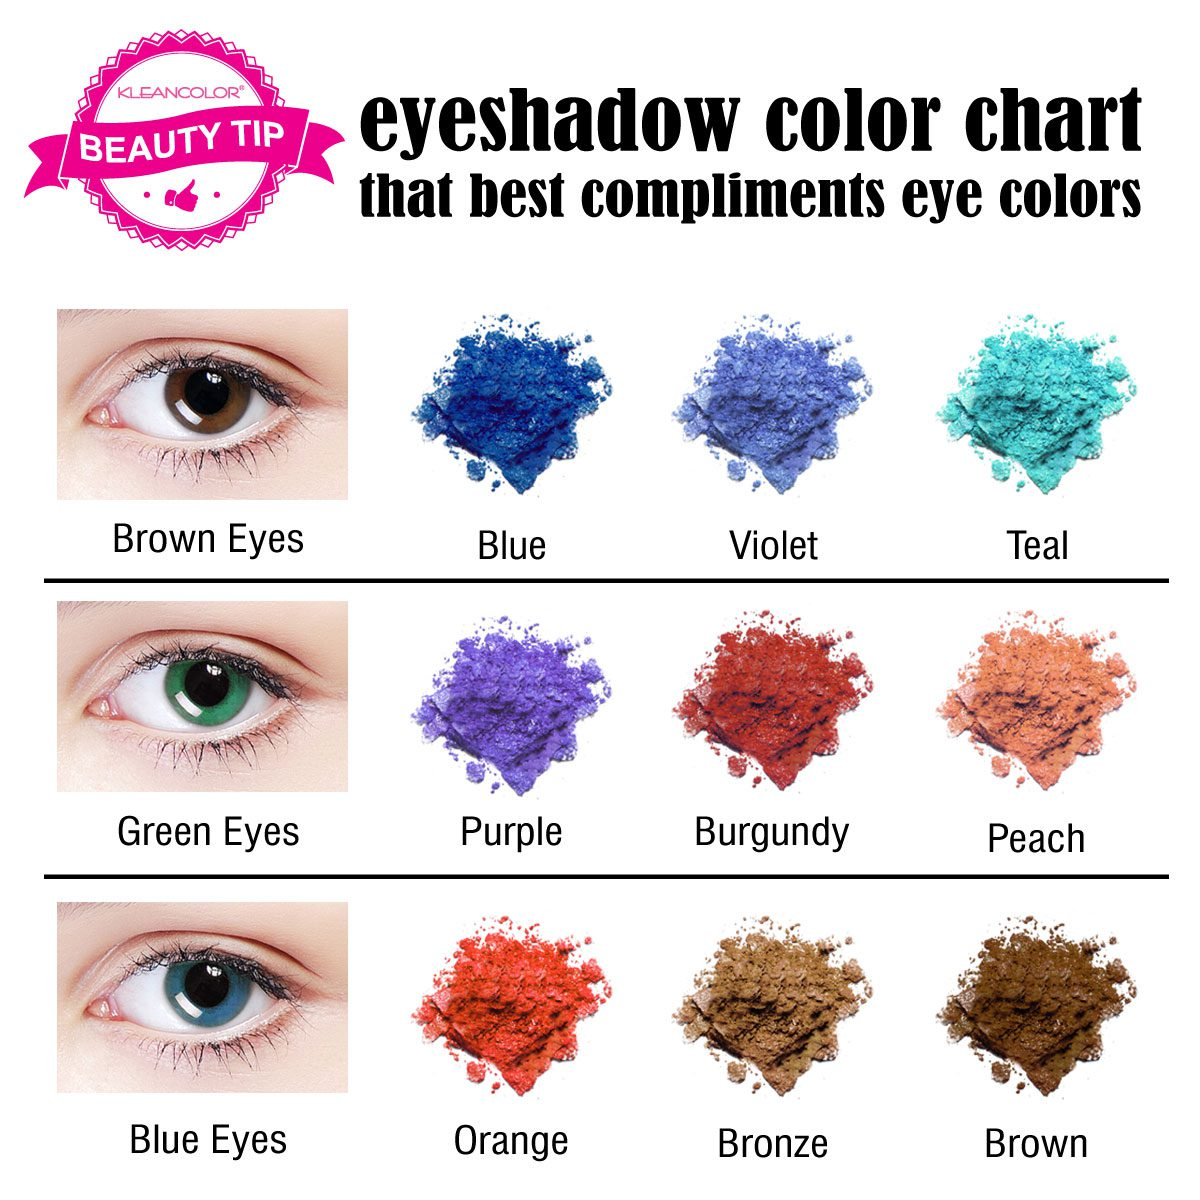 How to pick the right eye shadow shades for your eye color nvjuhfo Image collections